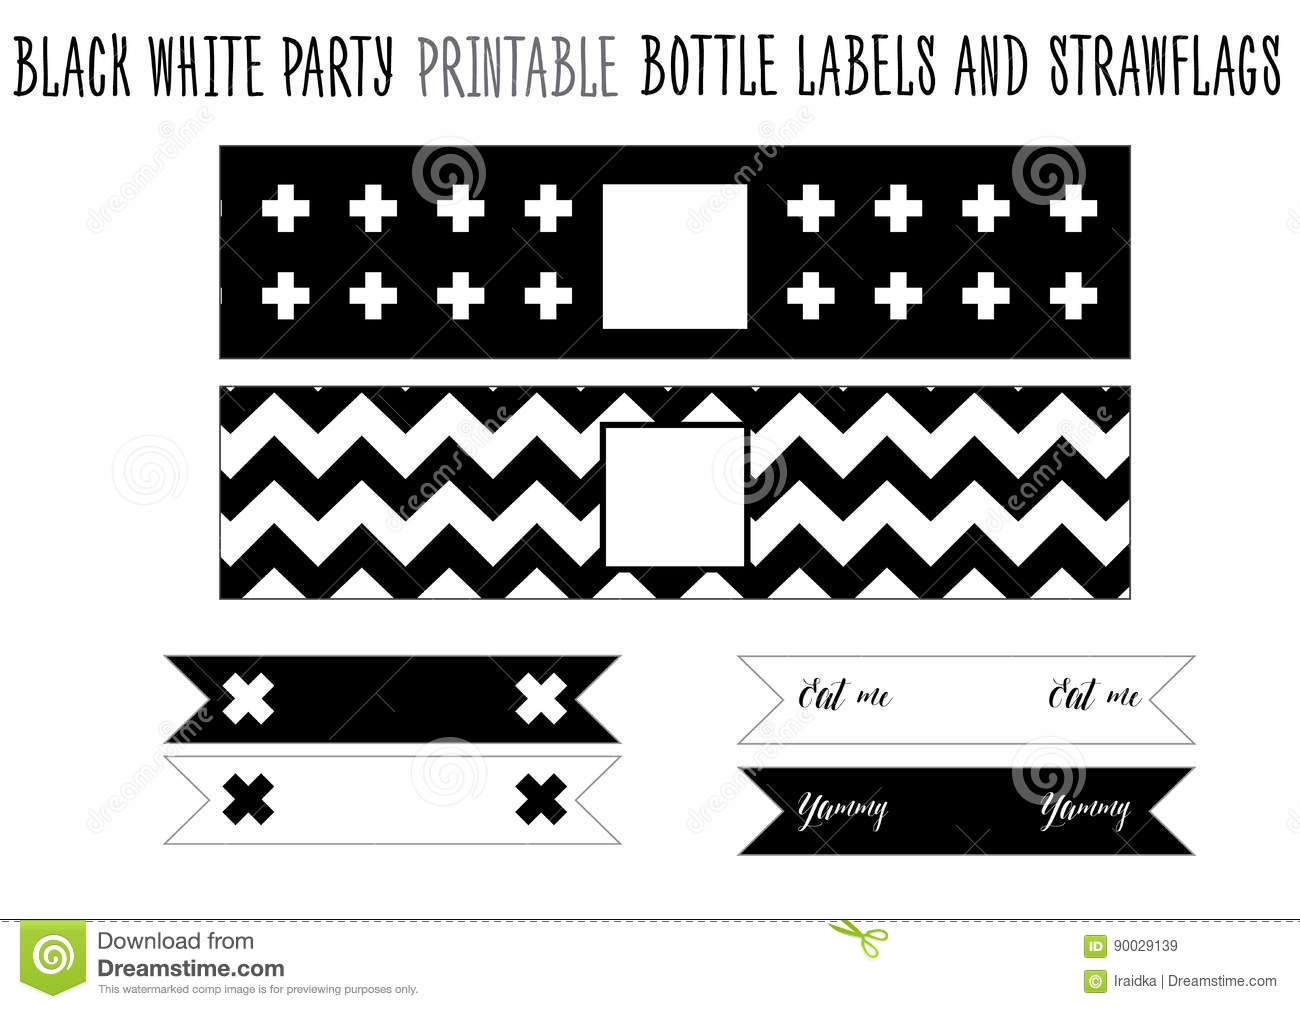 bottle label and strawflags printable for black and white party